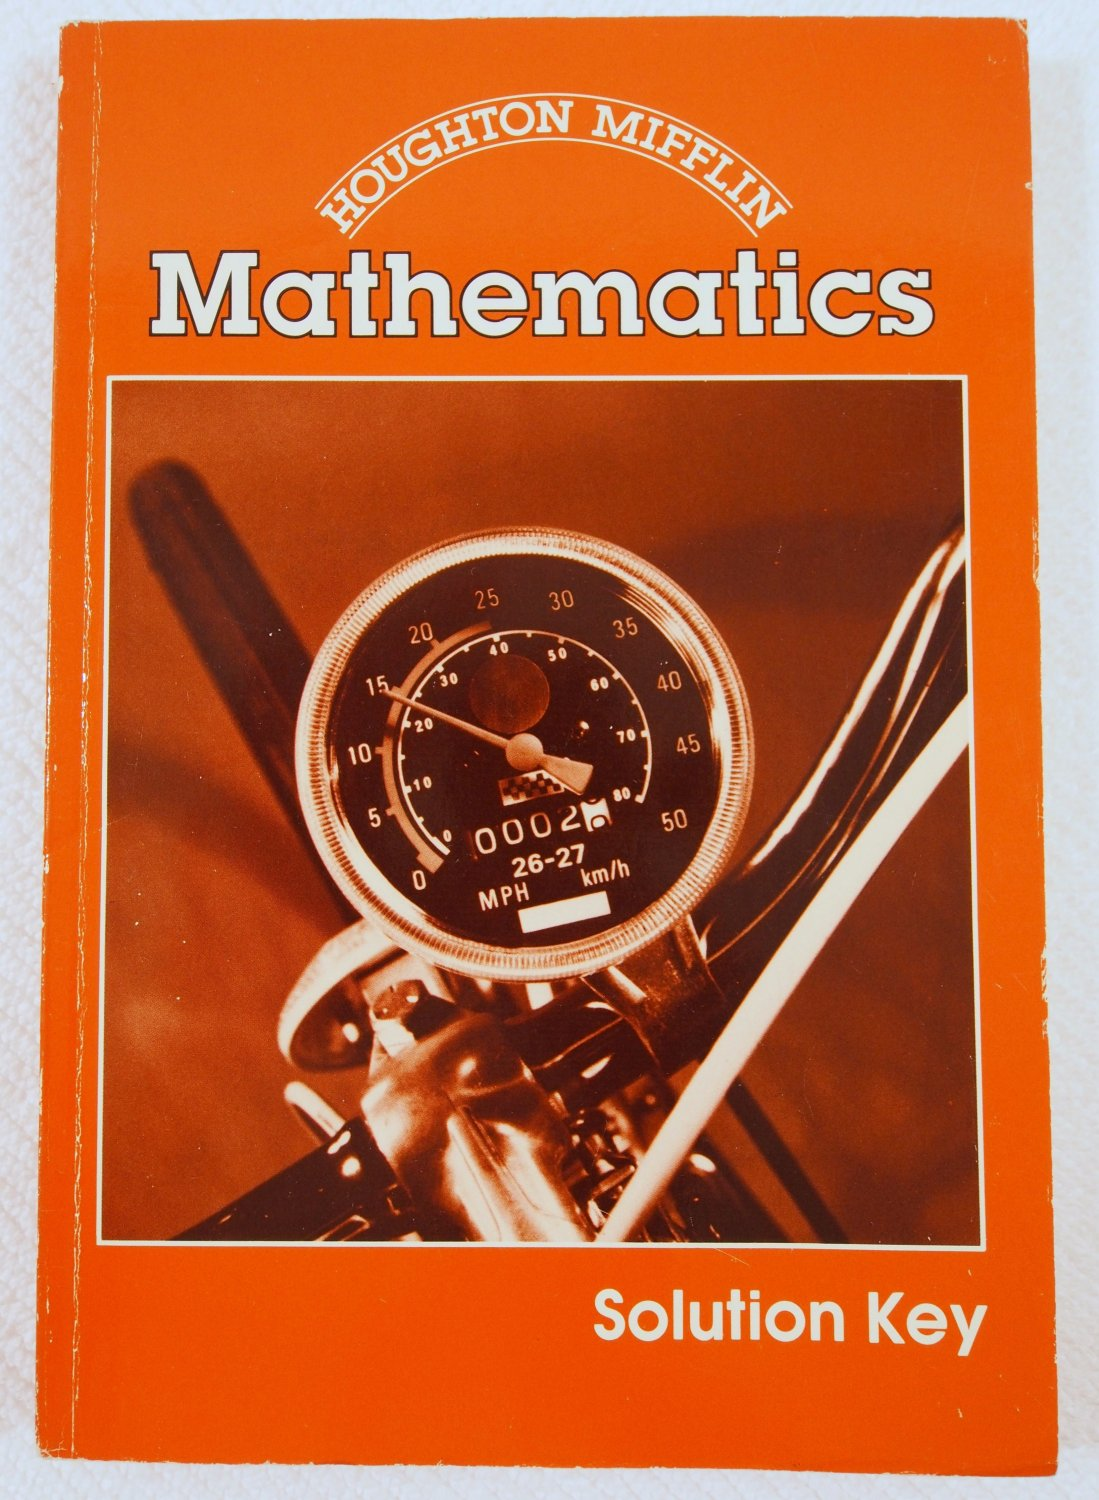 Houghton Mifflin Mathematics Solution Key